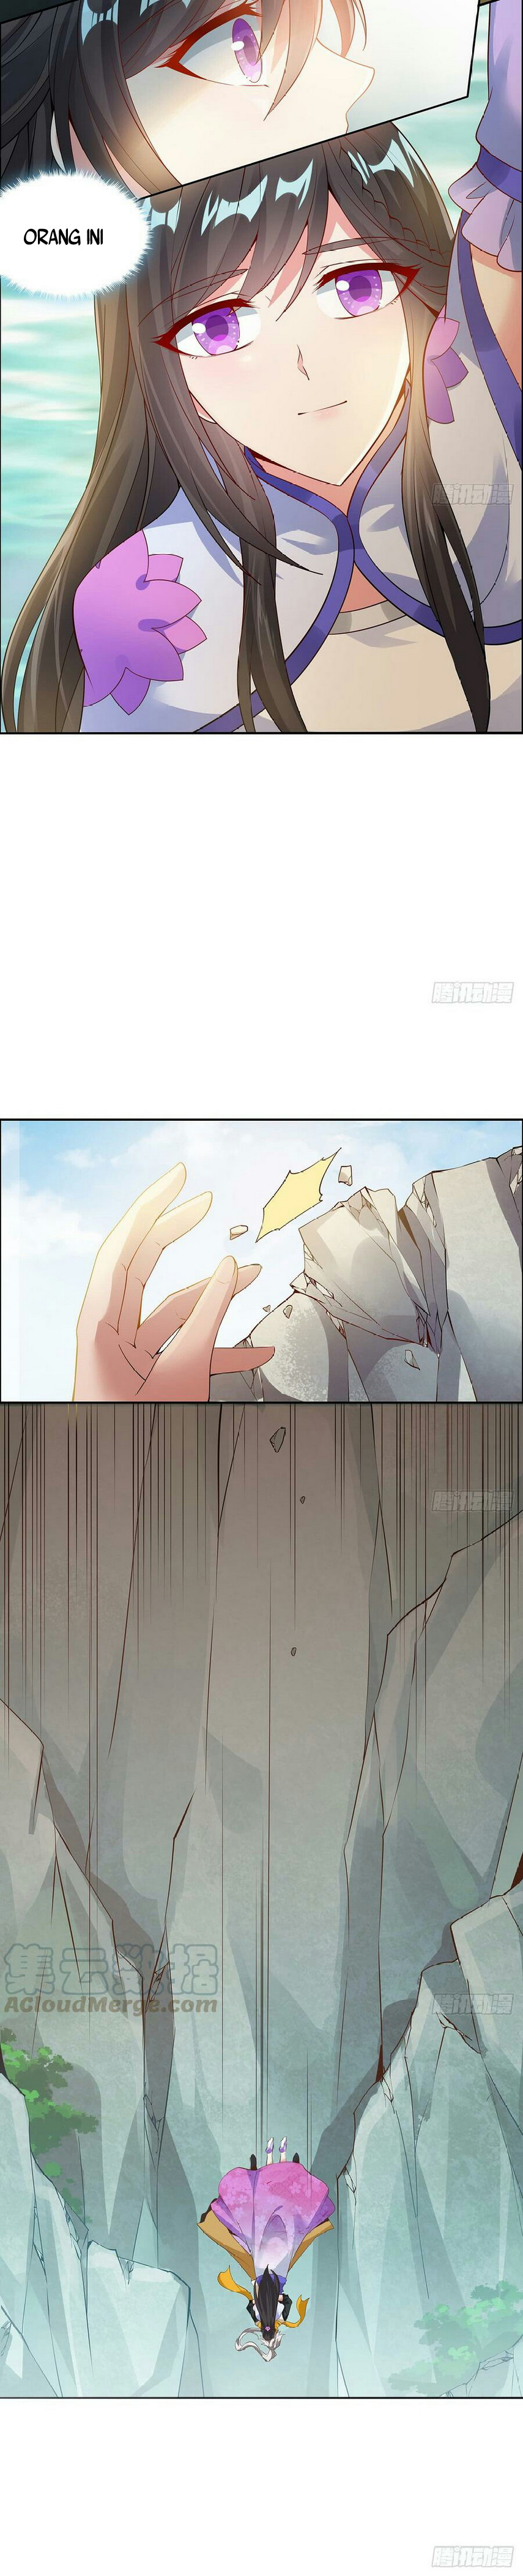 Inverse Scale Chapter 47